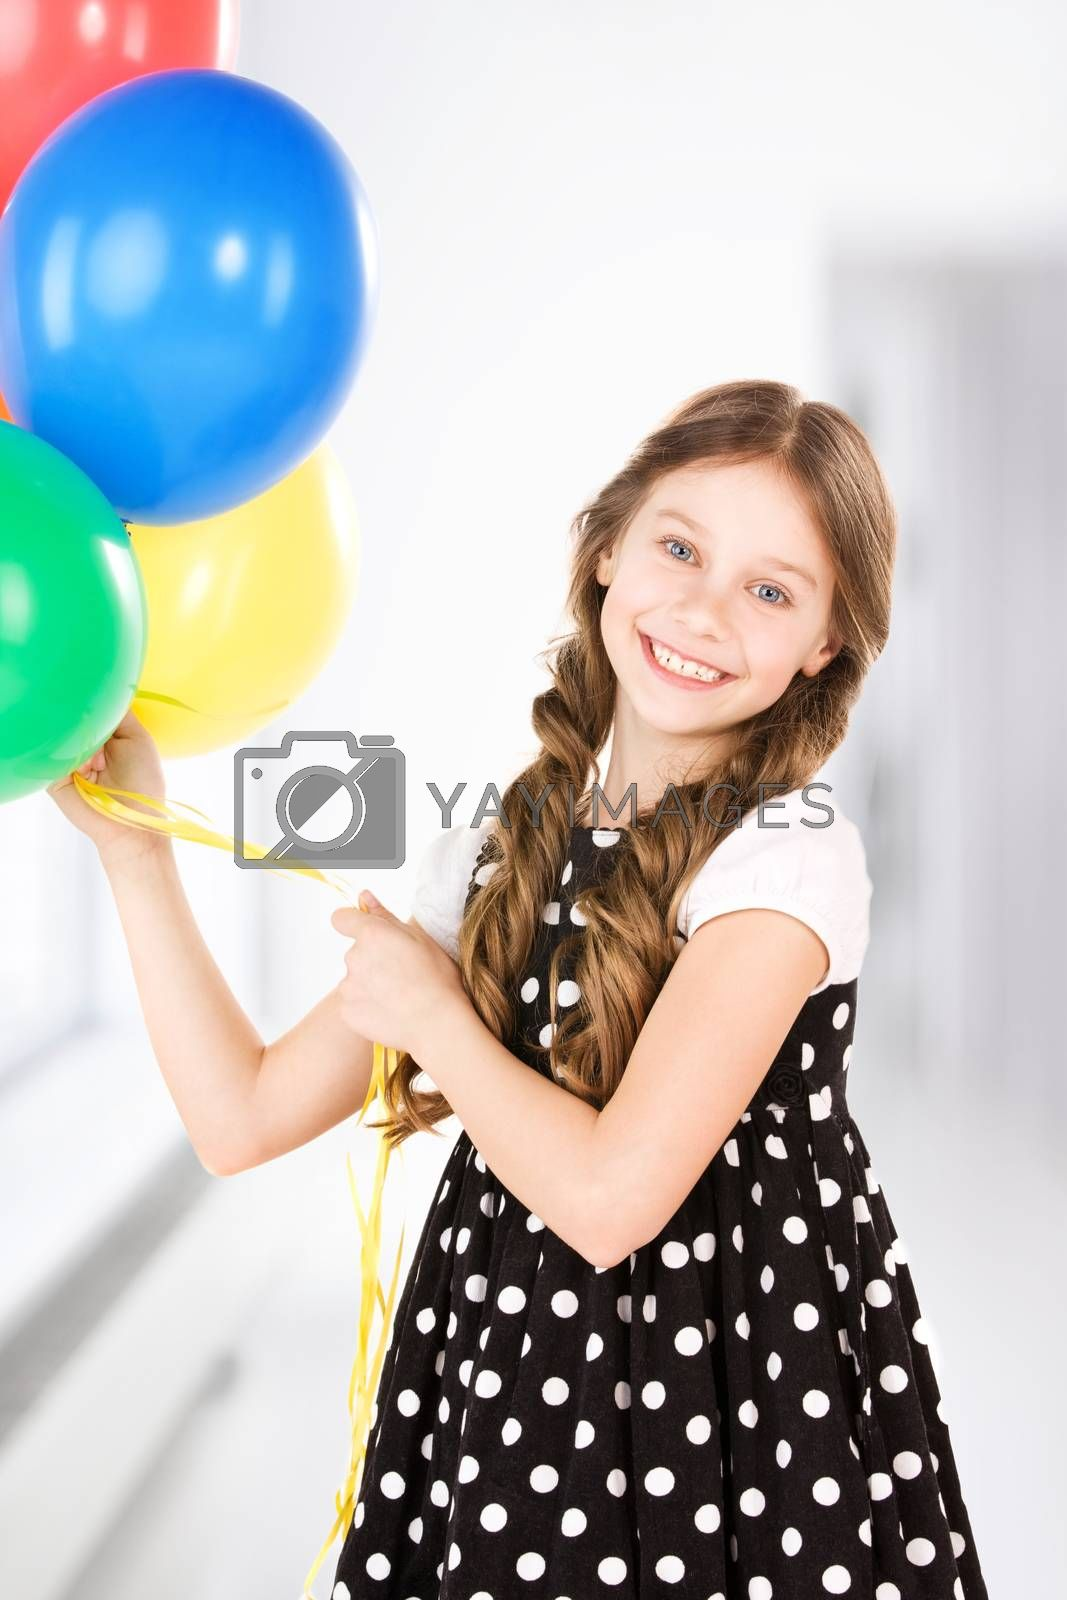 happy girl with colorful balloons by dolgachov